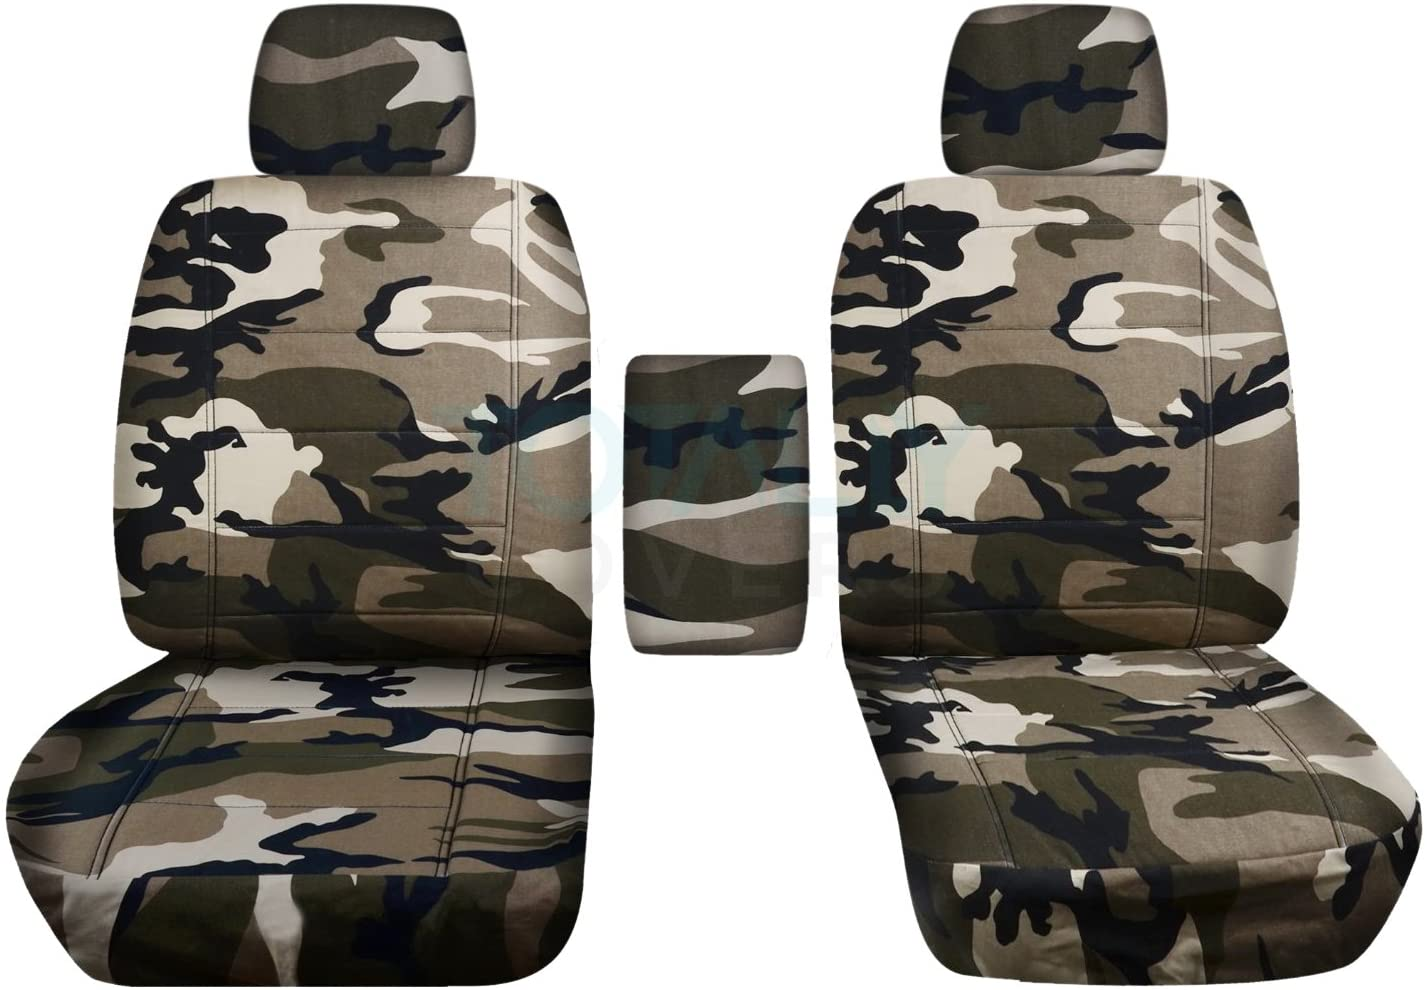 Totally Covers Compatible with 2009-2014 Ford F-150 Camo Truck Bucket Seat Covers with Center Armrest: Tan & Beige Camouflage (16 Prints) F-Series F150 Front